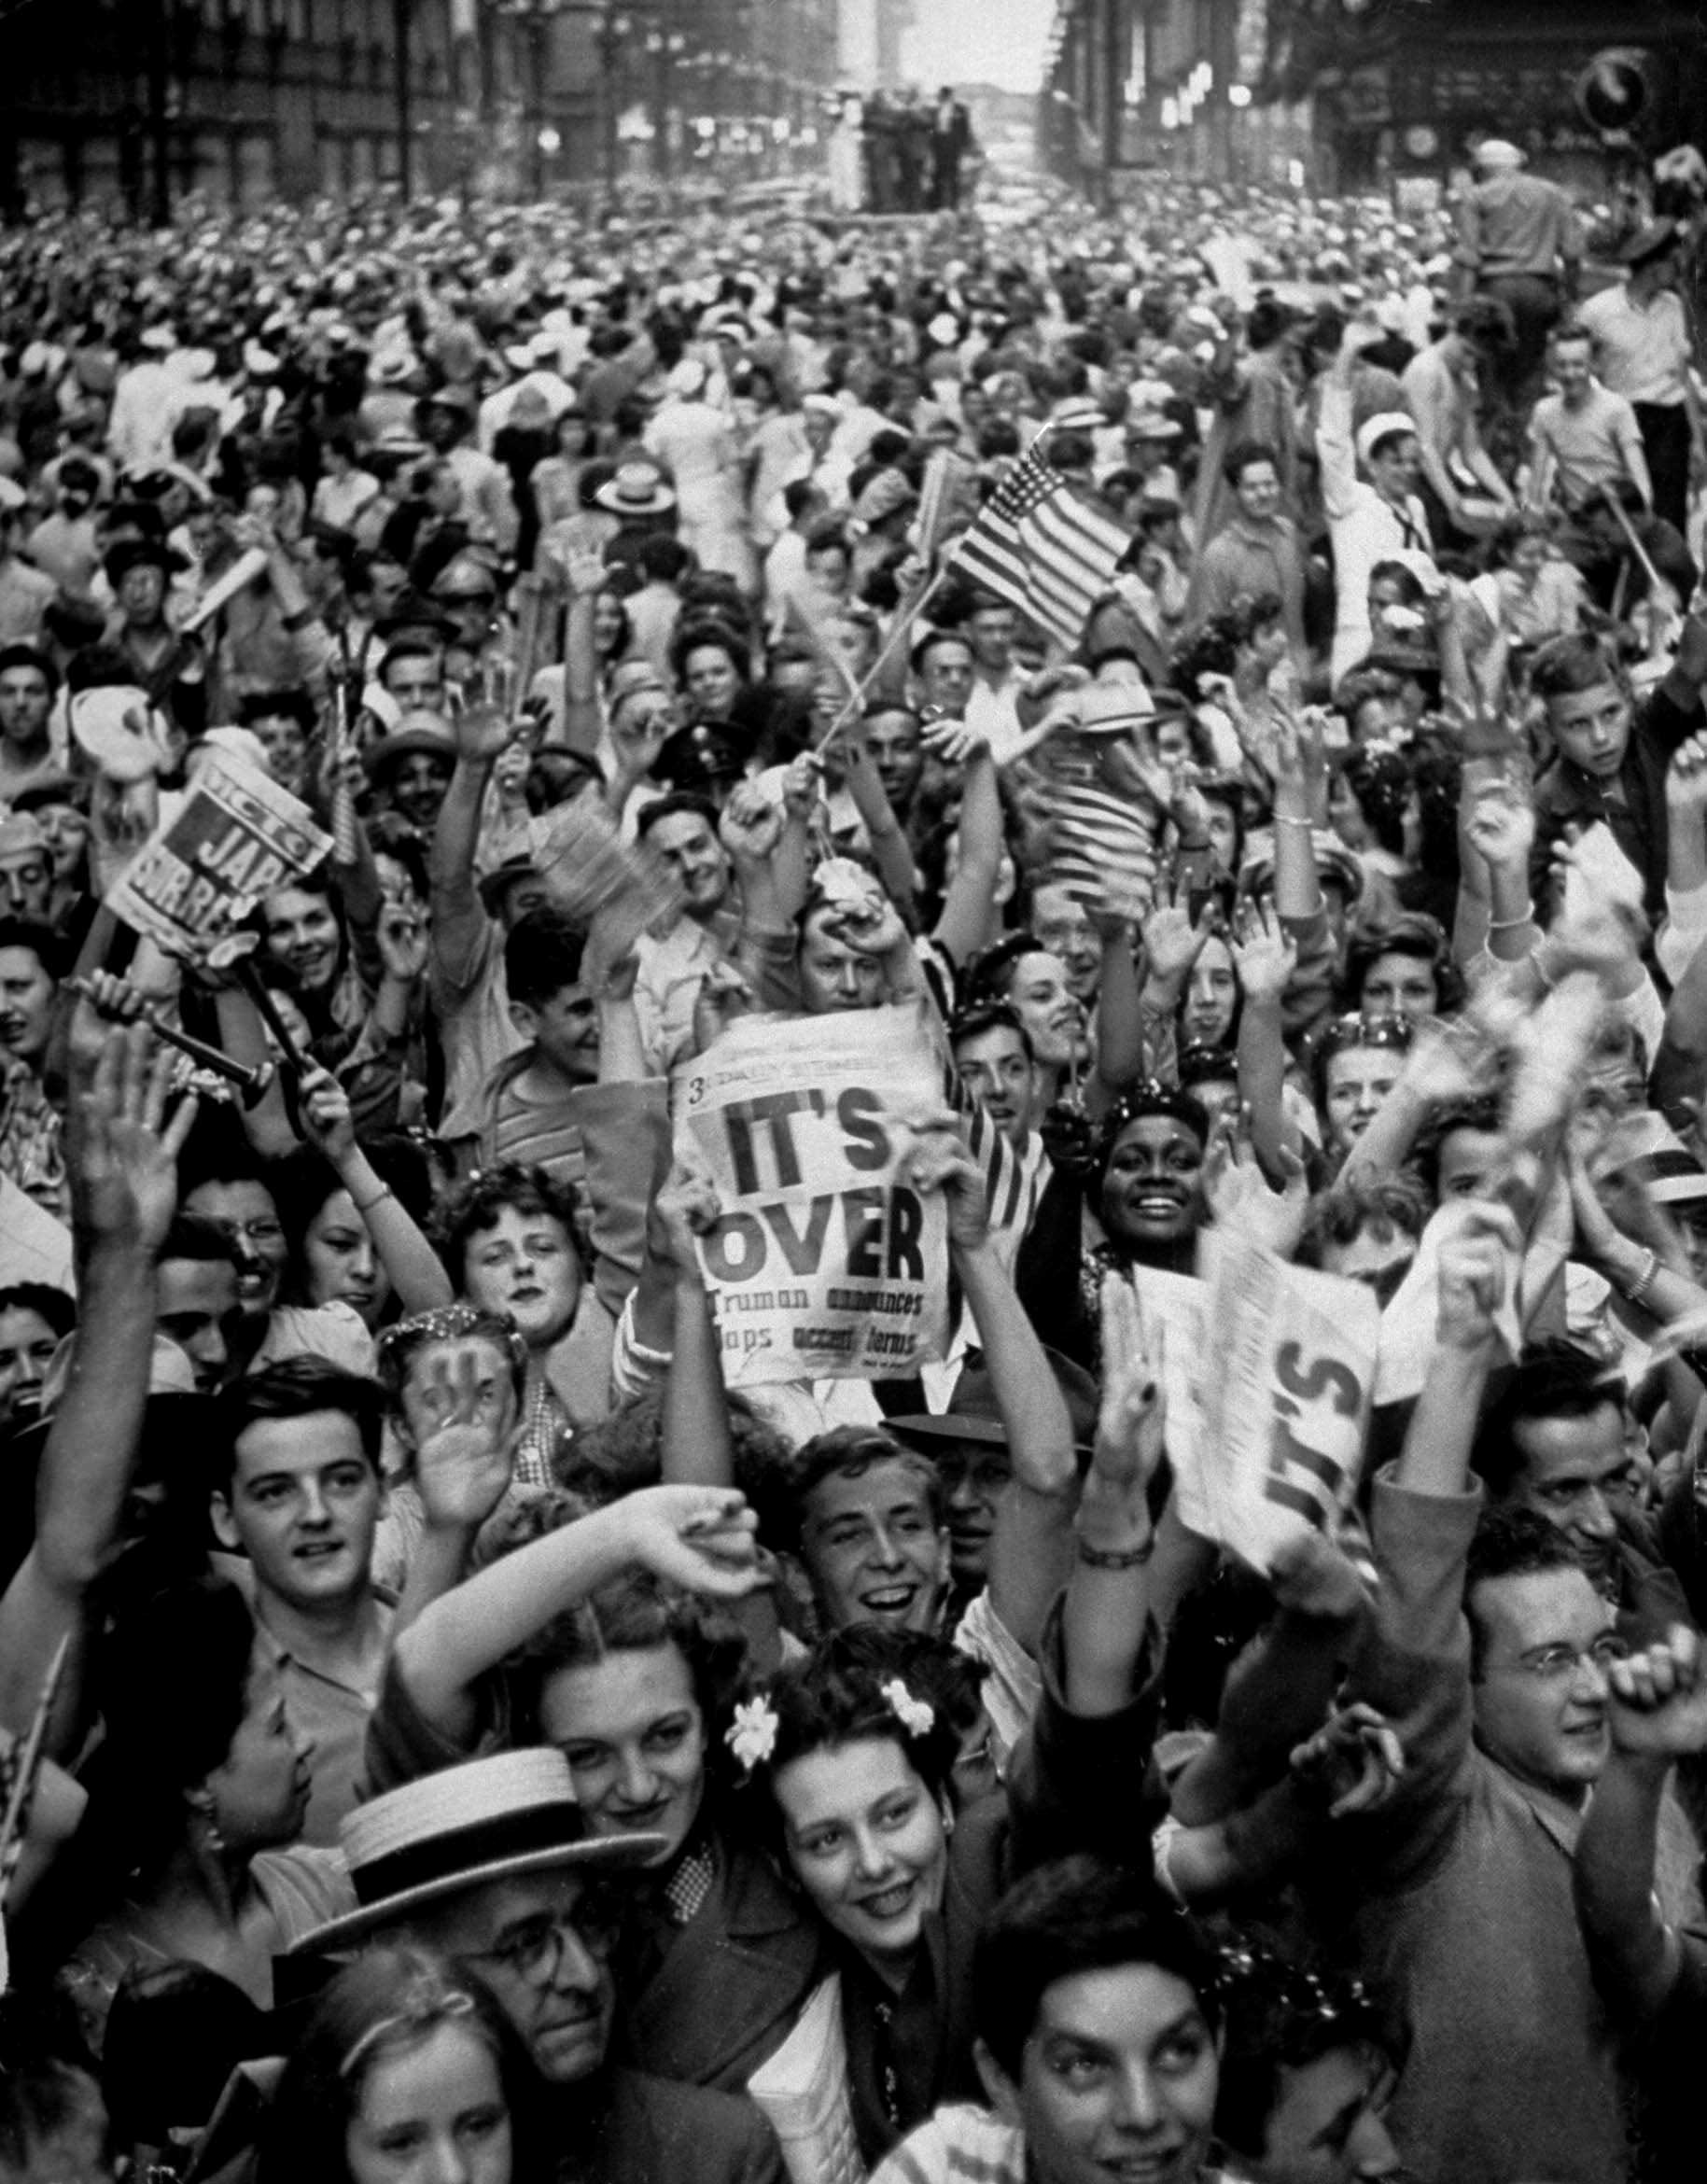 Not published in LIFE. Celebrations in Chicago, August 14, 1945 - V-J Day.